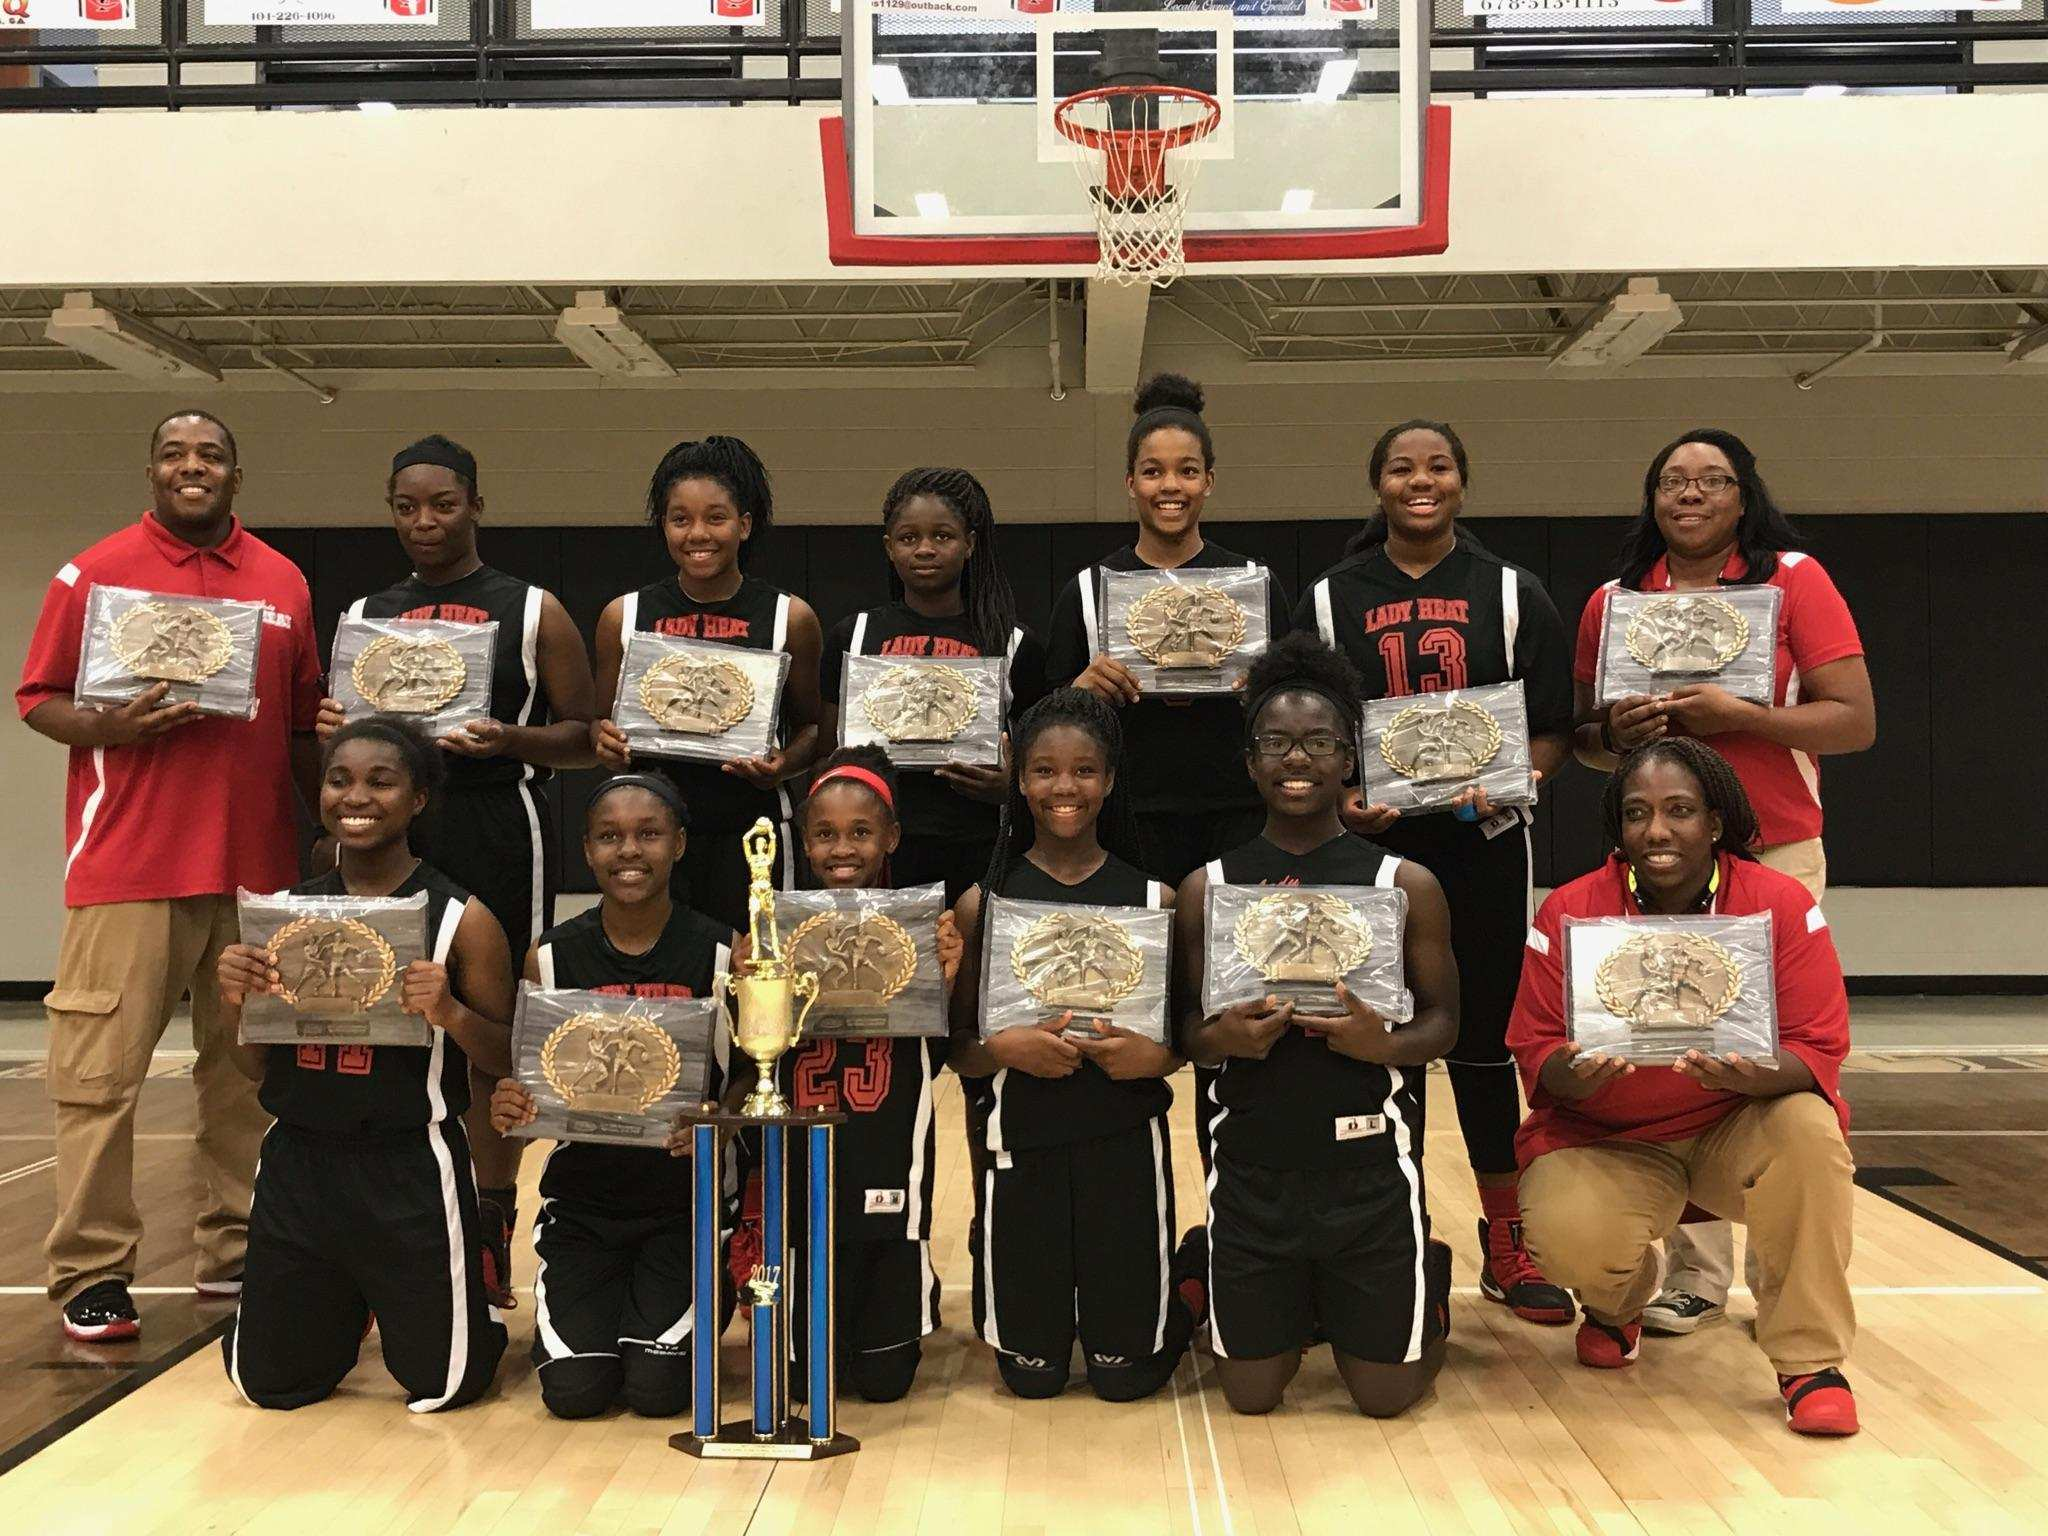 images/stories/lady heat champs.jpg